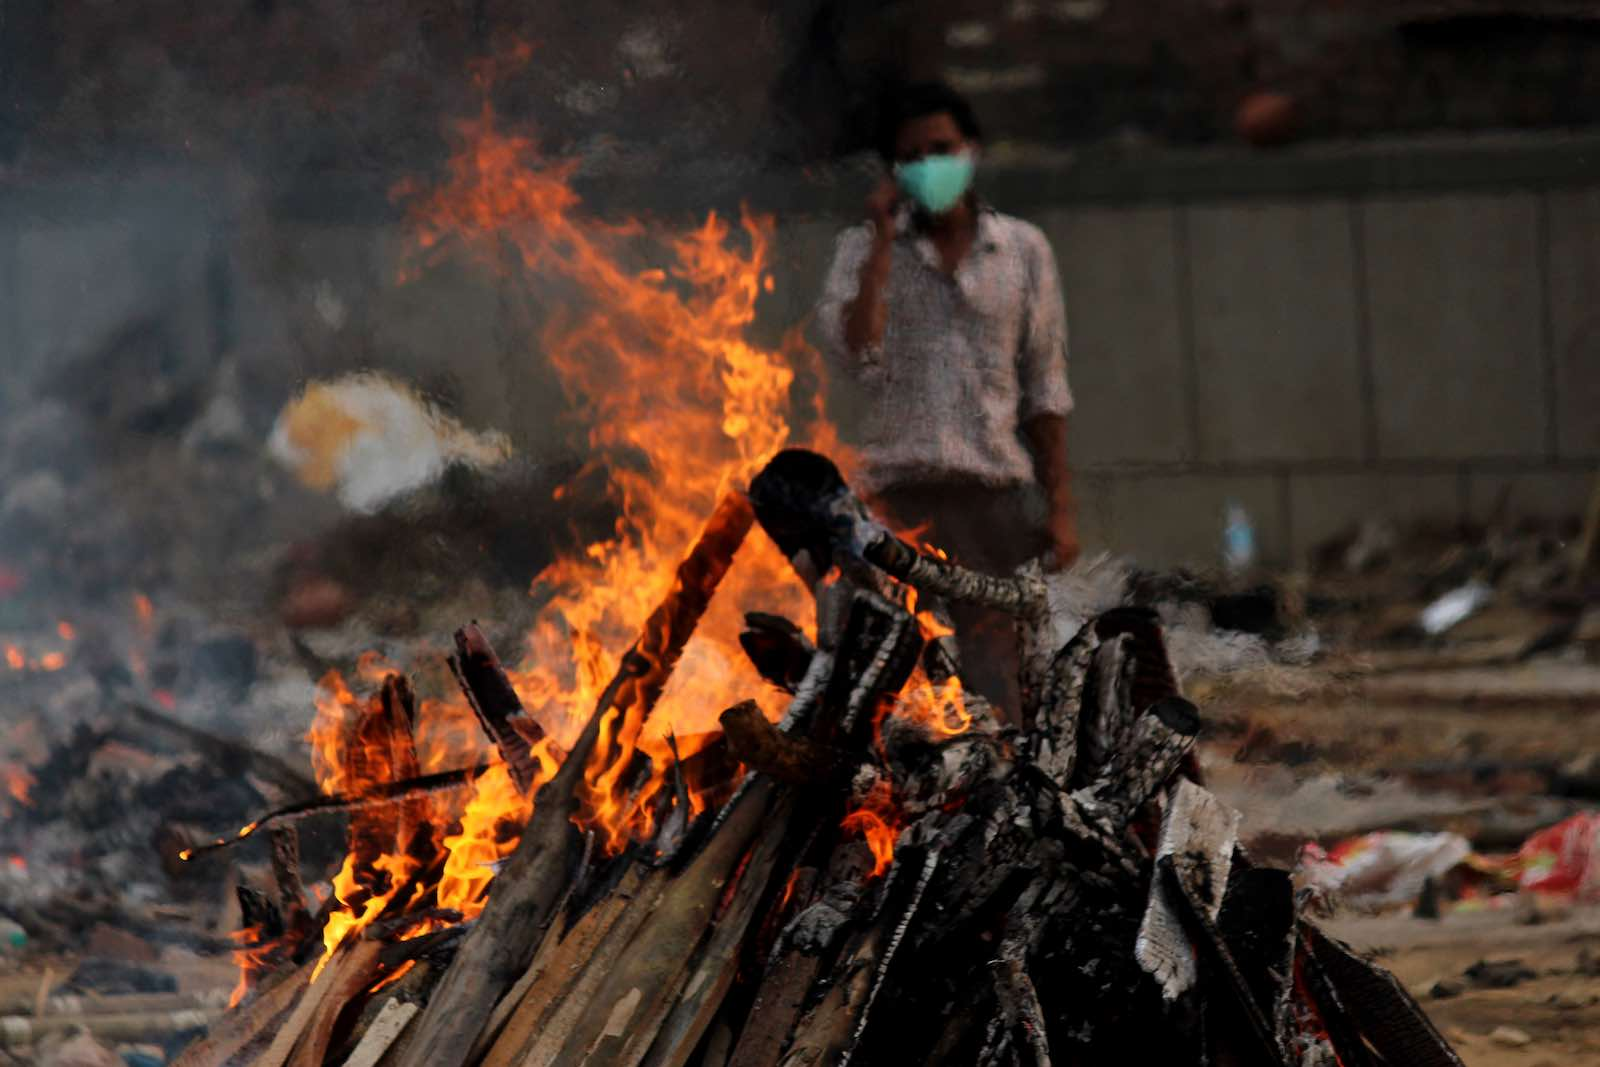 A burning pyre at a makeshift crematorium in Delhi, India on 1 May (Mayank Makhija/NurPhoto via Getty Images)